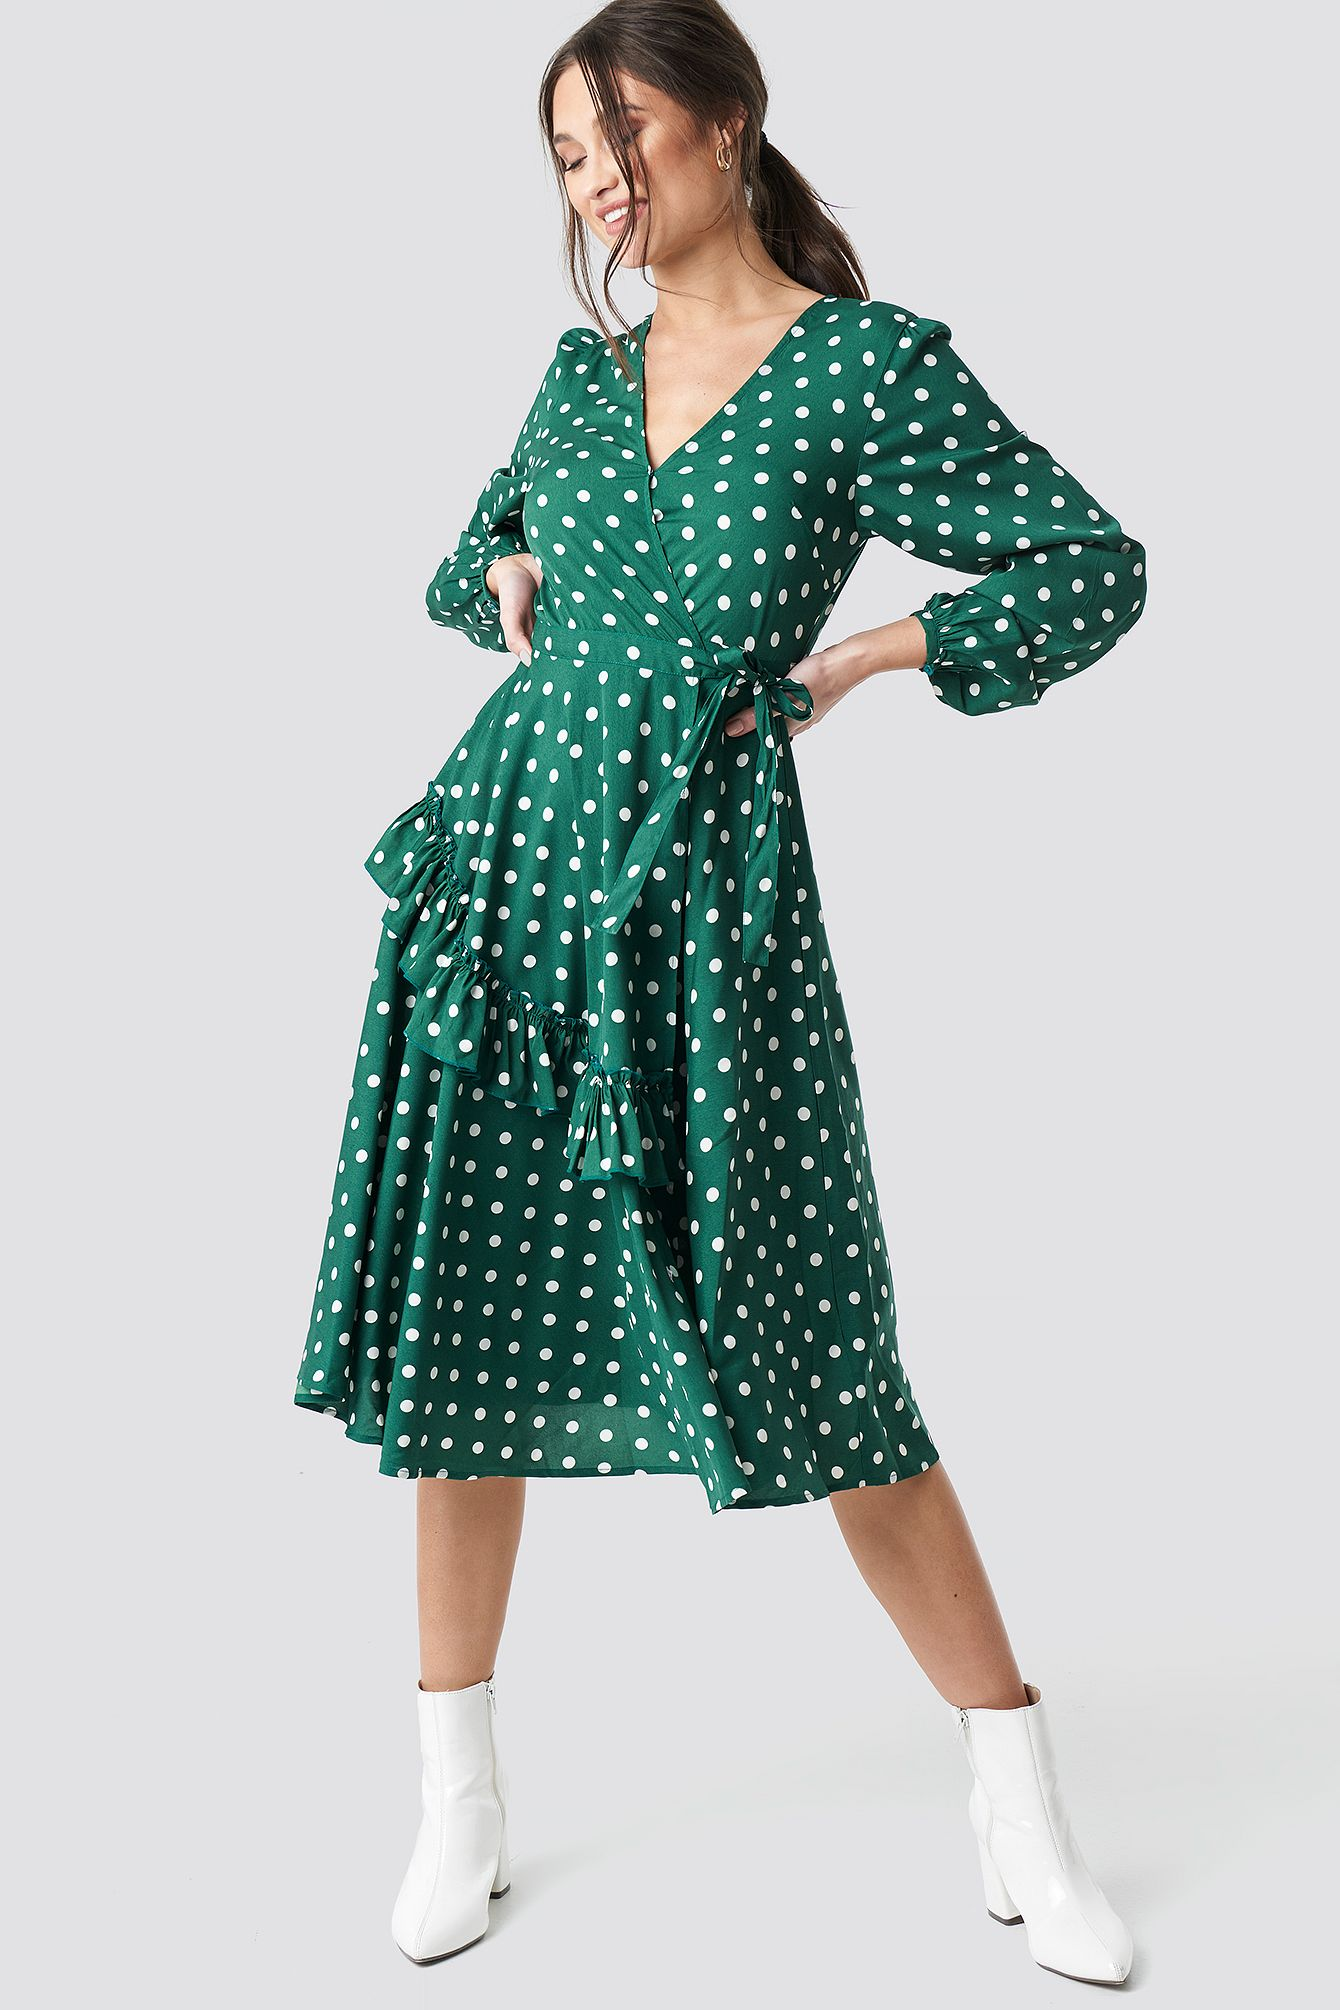 na-kd boho wrapped dot midi dress - green | green midi dress